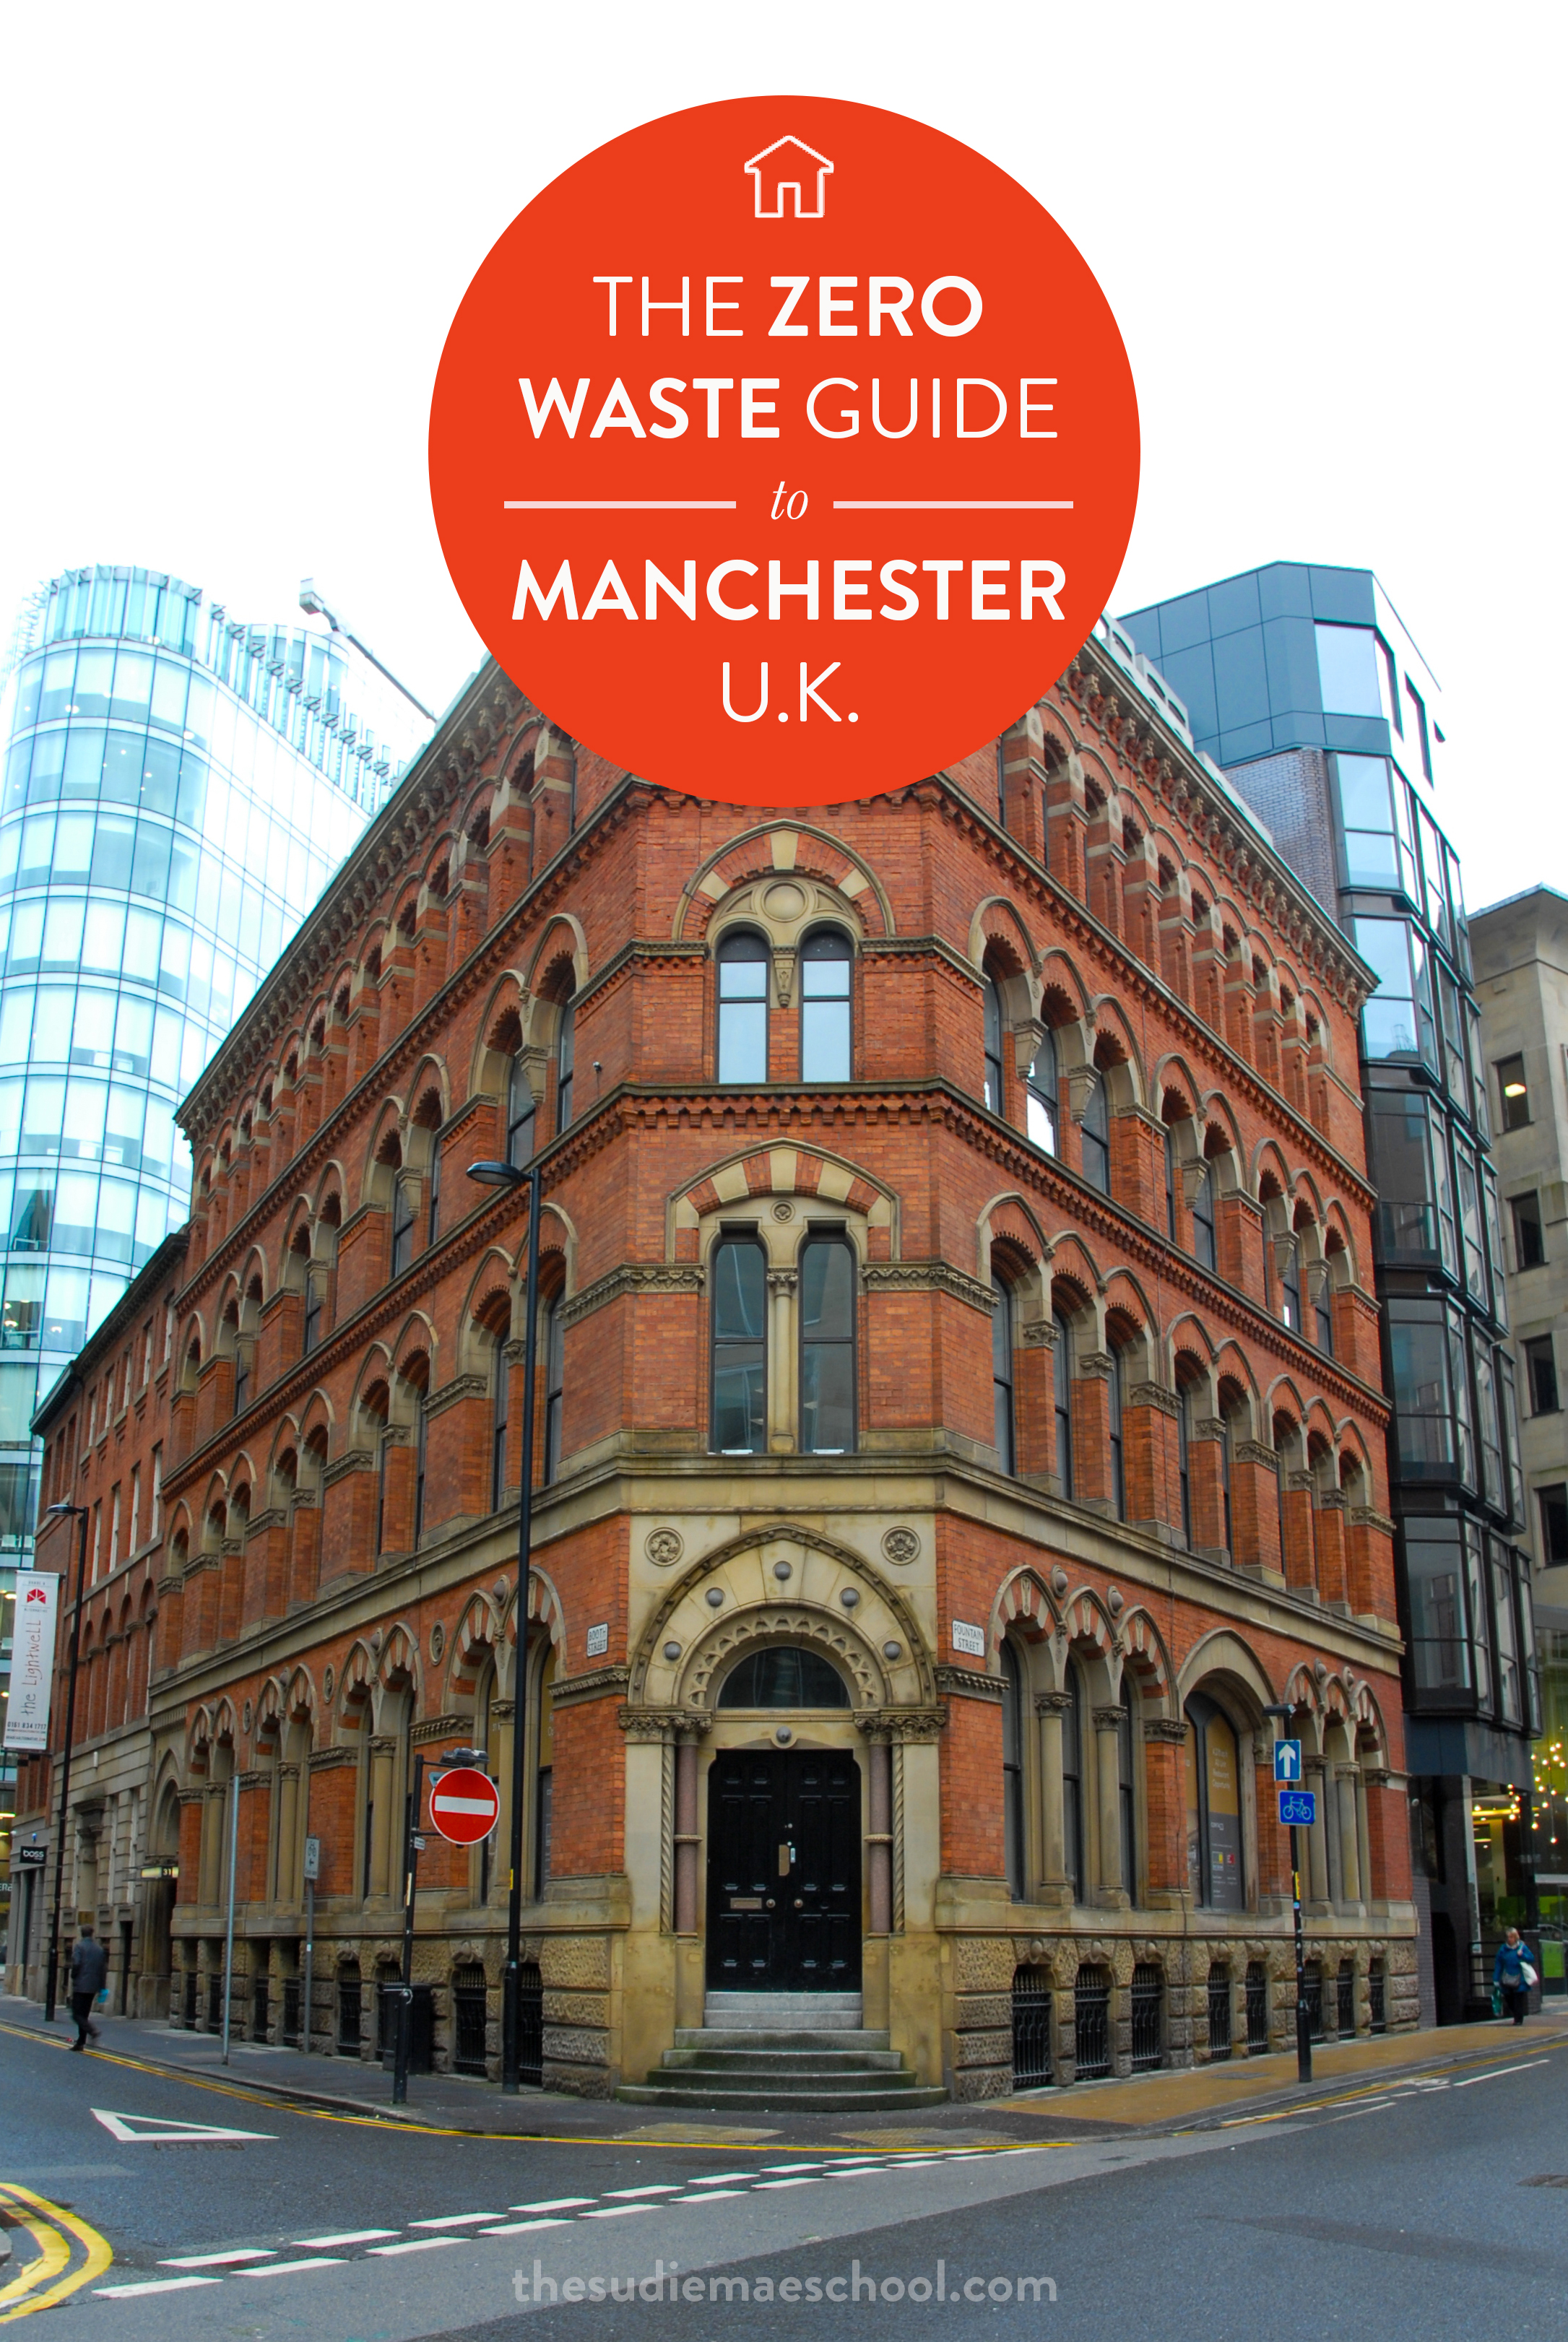 The zero waste guide to Manchester, UK